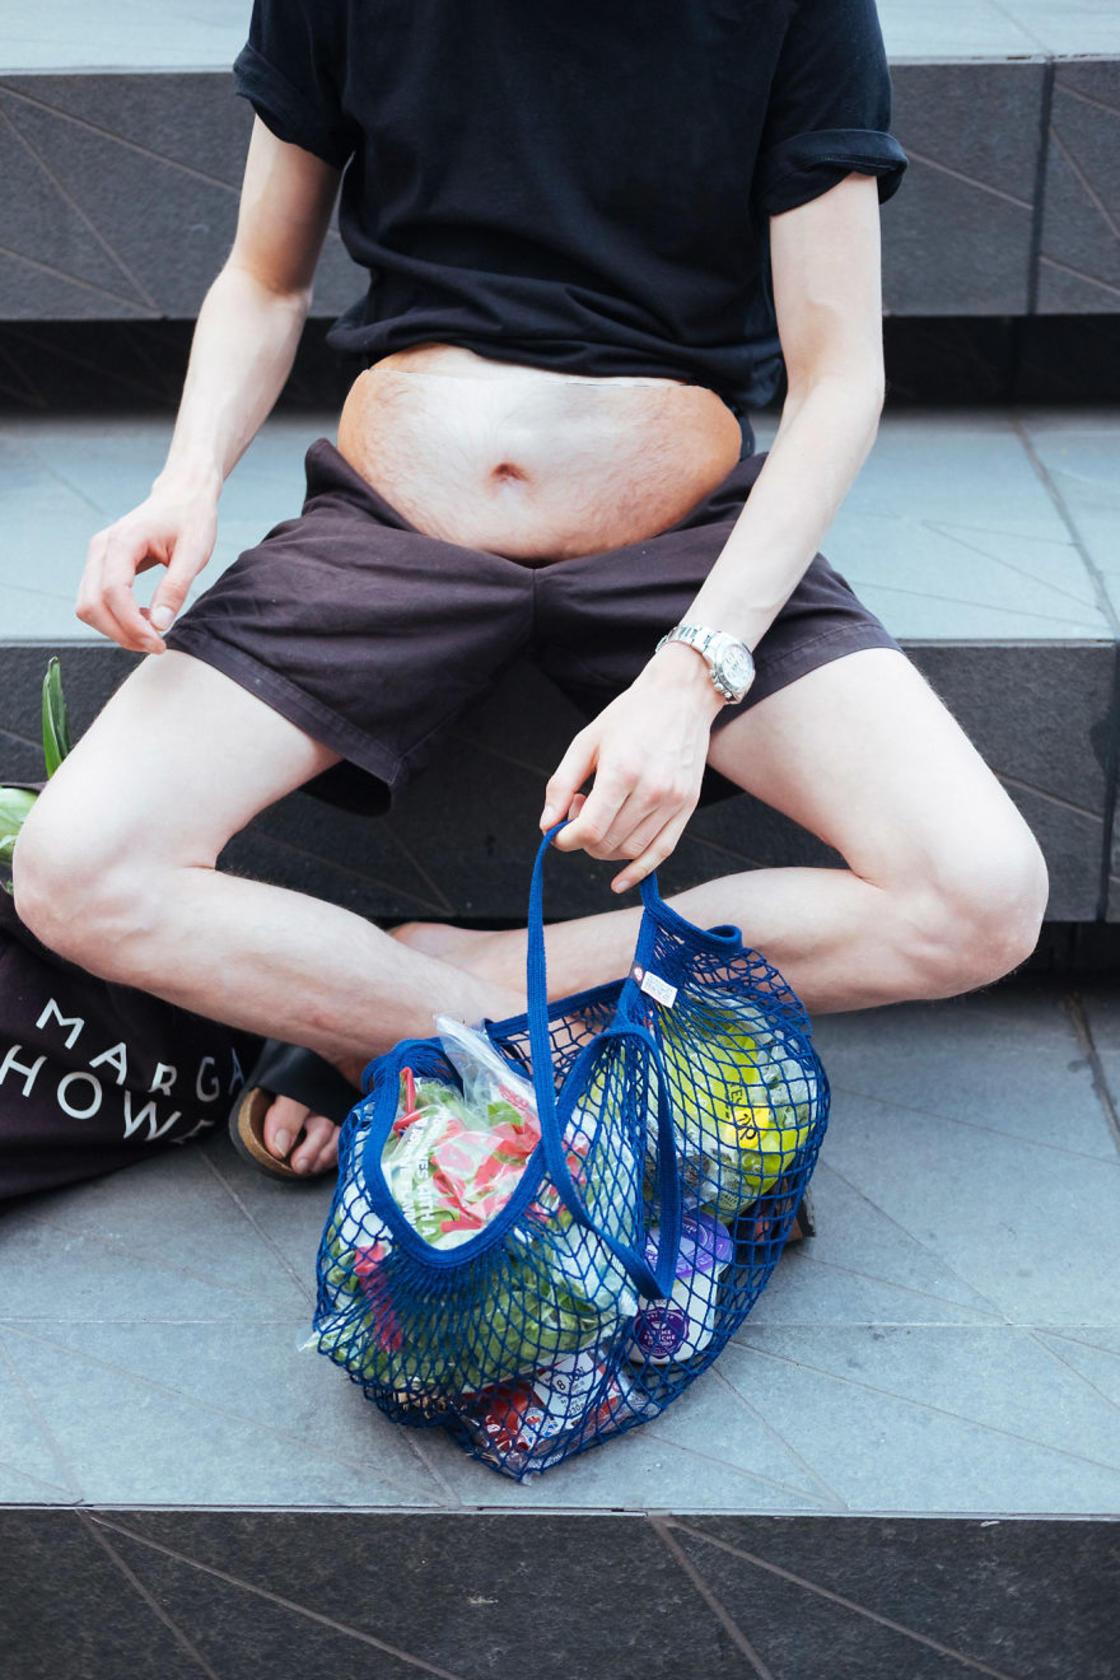 Dadbag – There's no need to drink beer to get a Dadbod